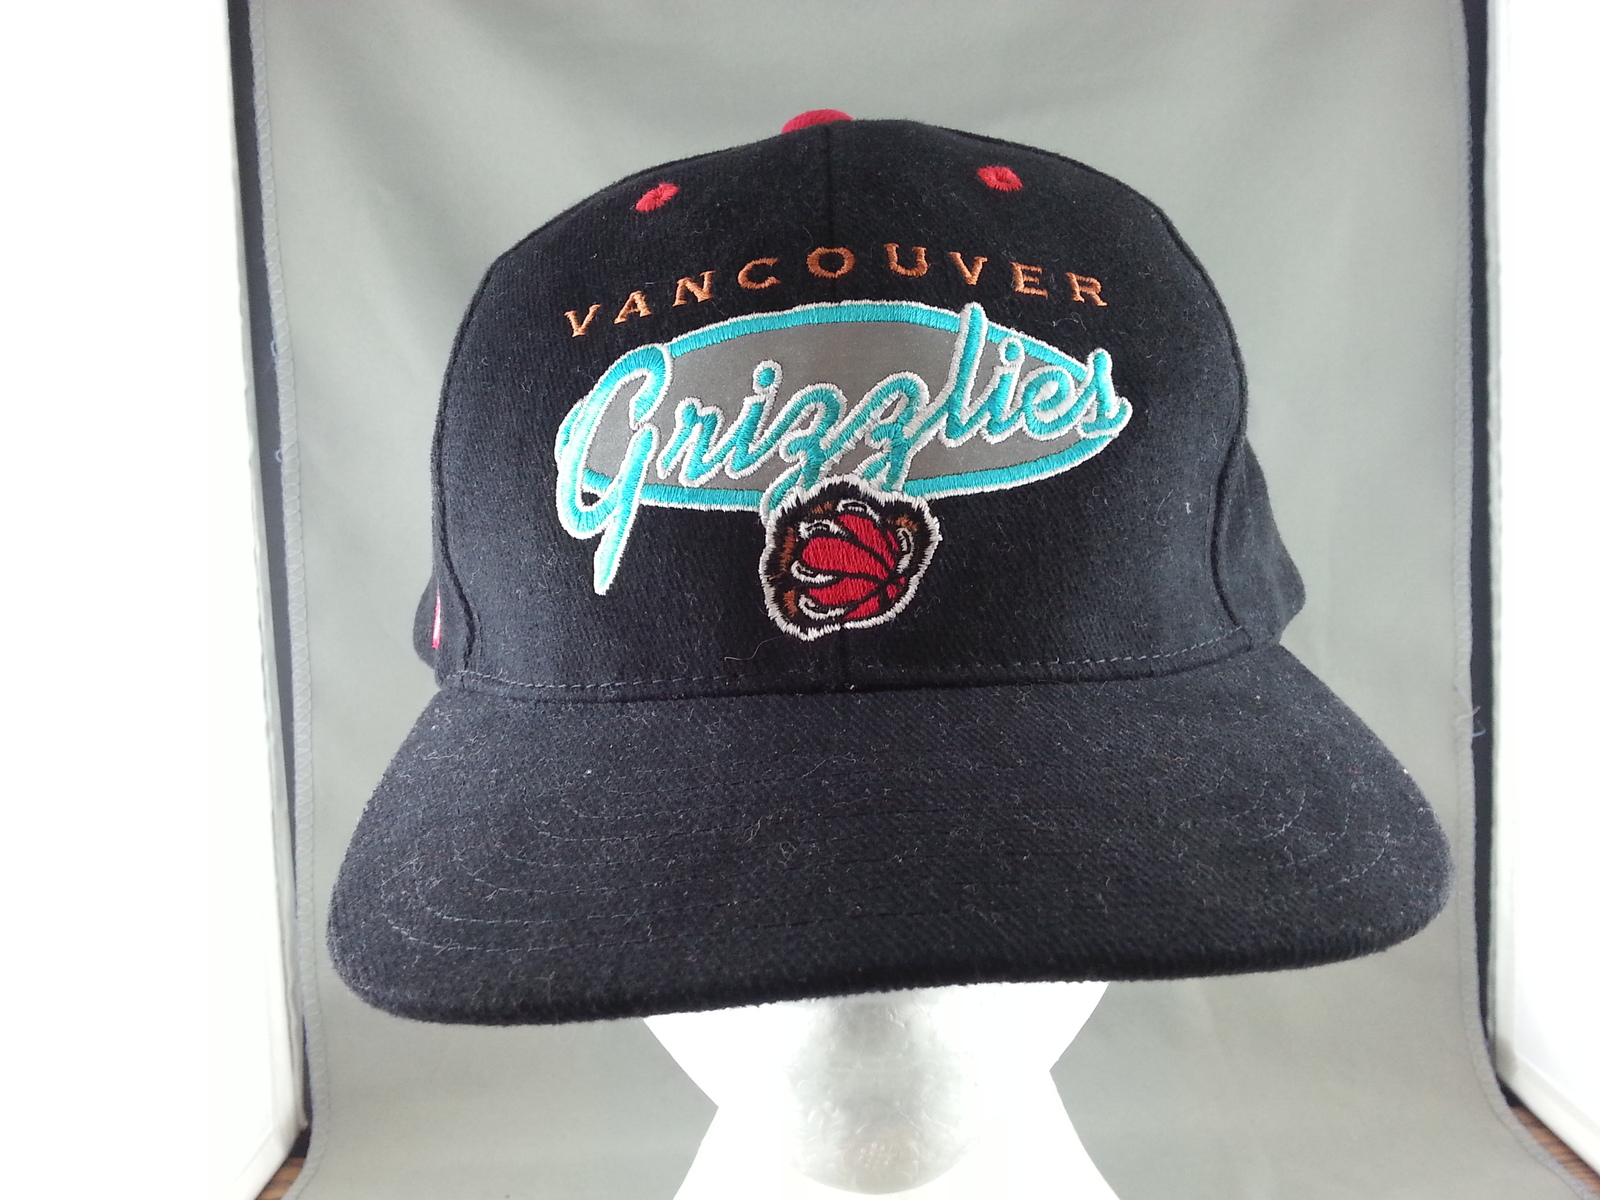 True Retro Vancouver Grizzlies Baseball Hat - By Pro Player - From the 1990s